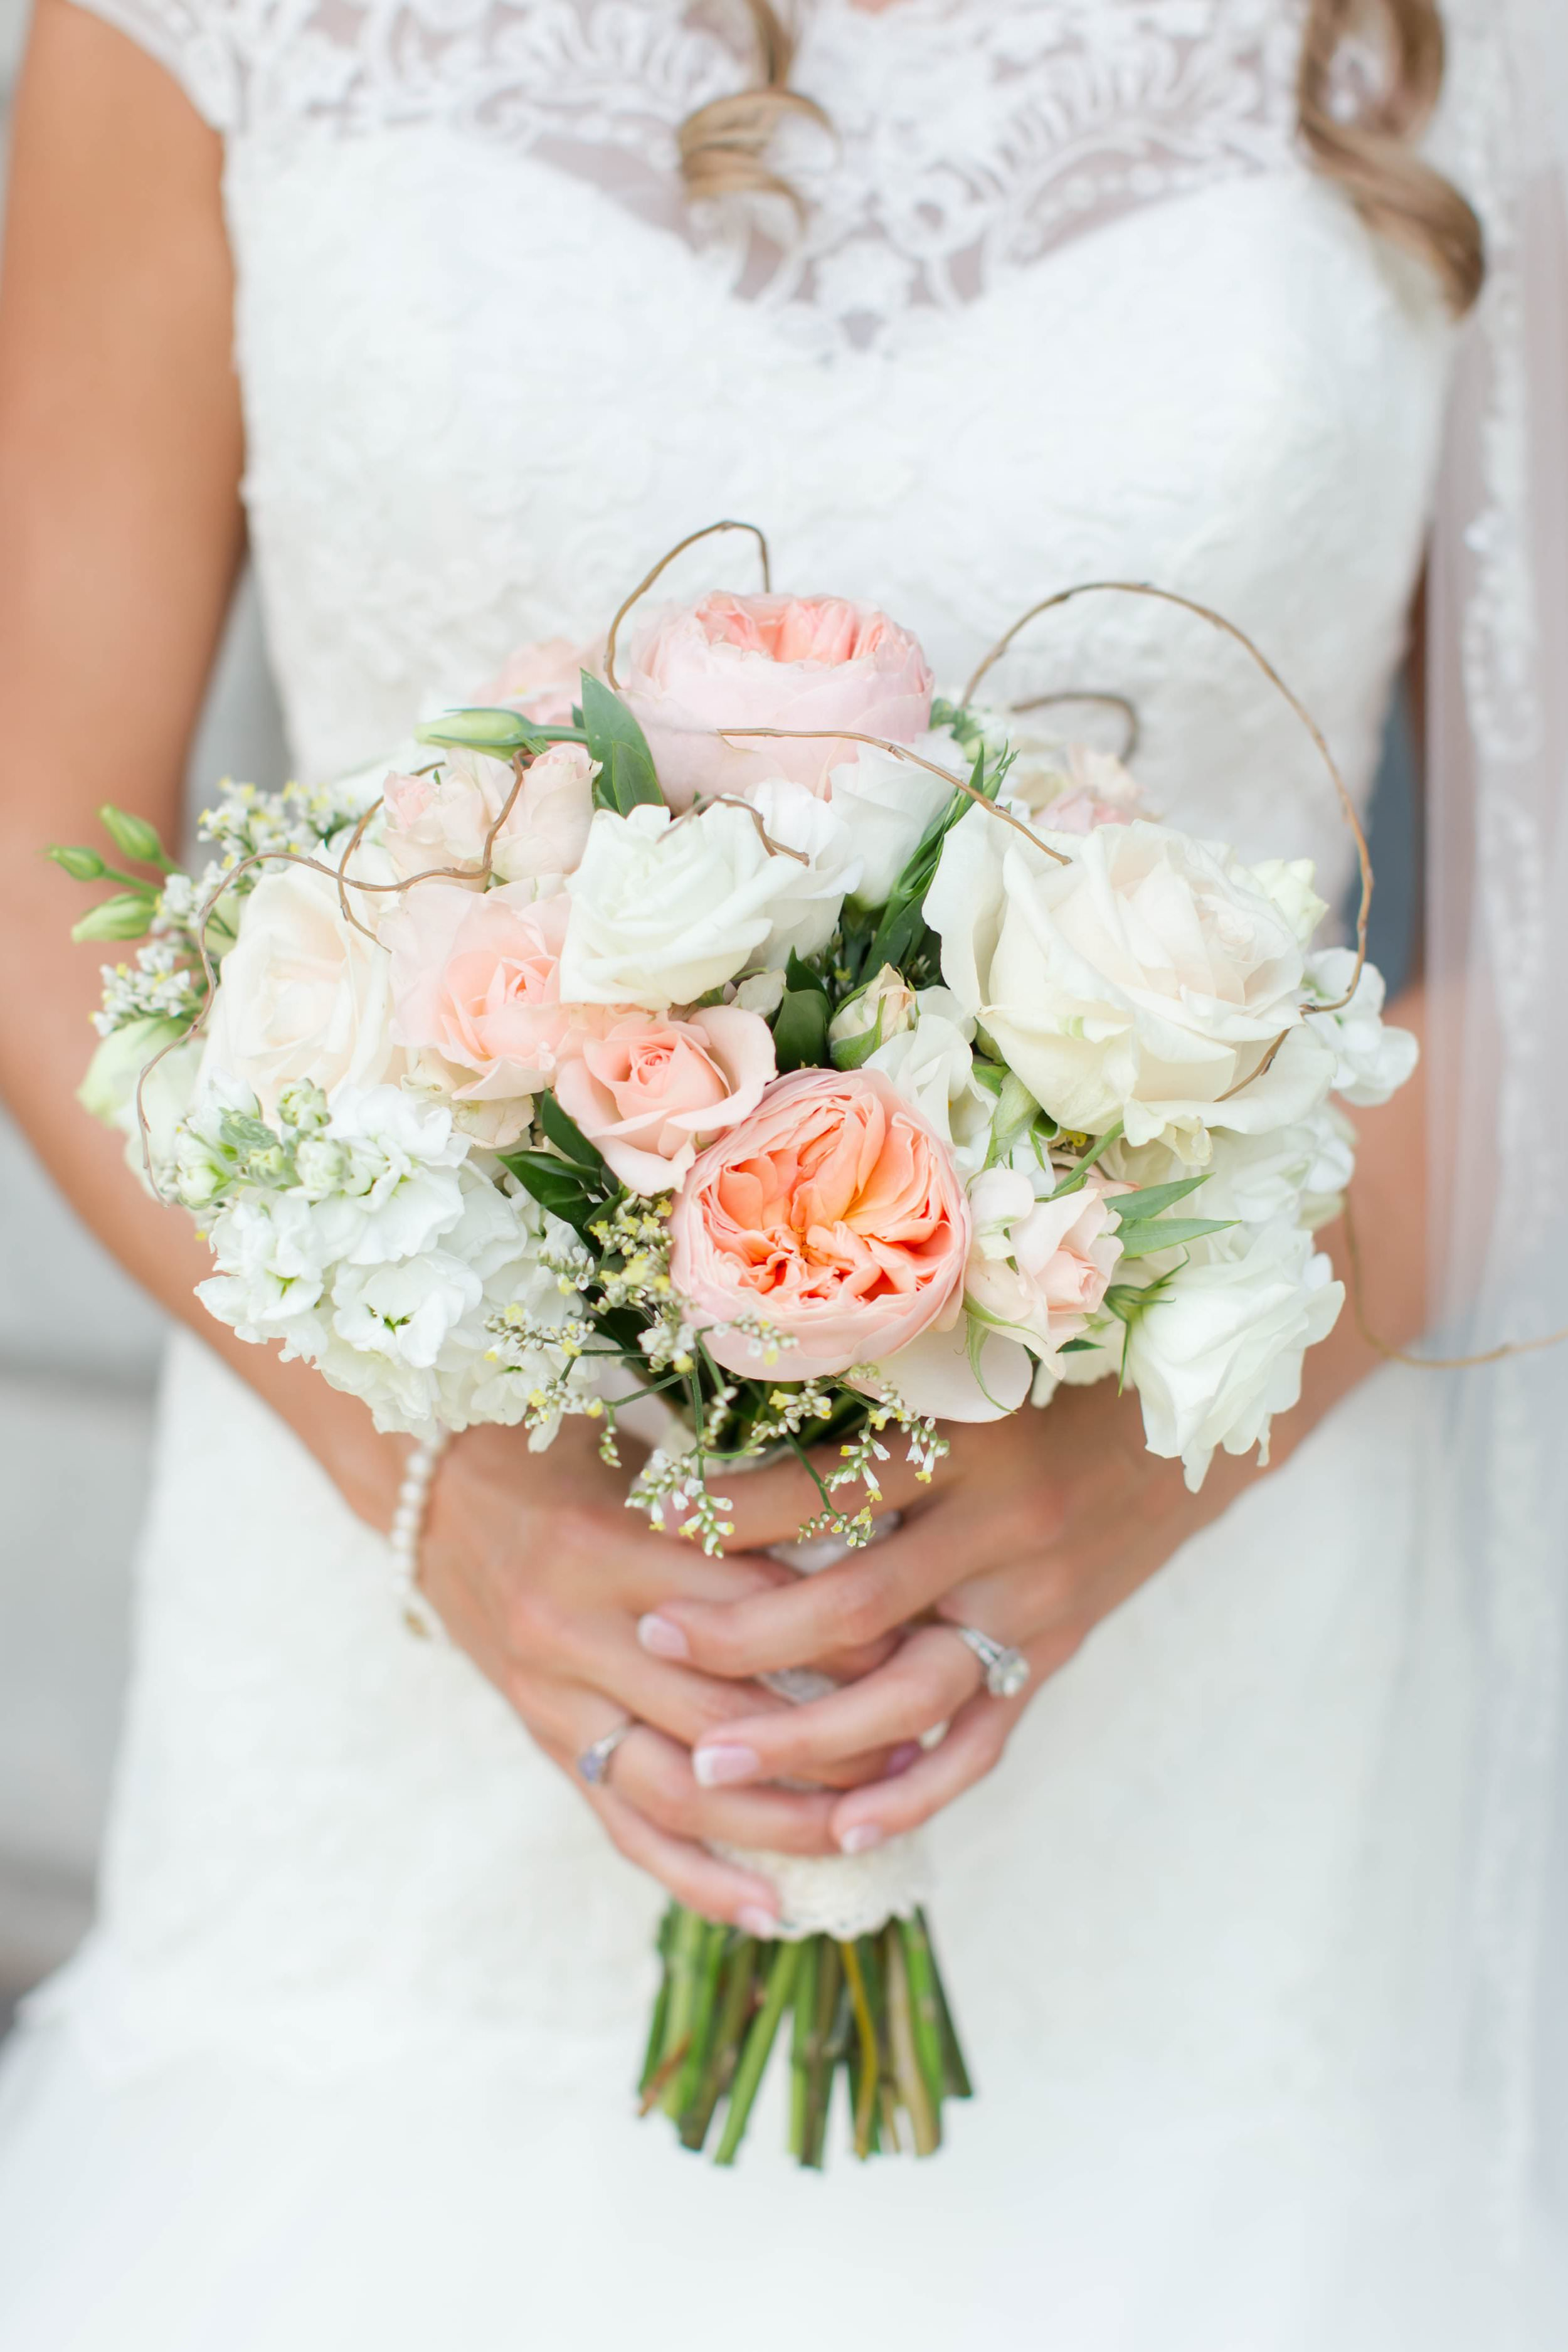 The peach garden roses in Abby's bouquet give the design sophisticated Southern charm. Her bouquet was designed by  Atlanta floral designer Faith Flowers . Visit their blog post to view more  Foxhall Wedding Photos .